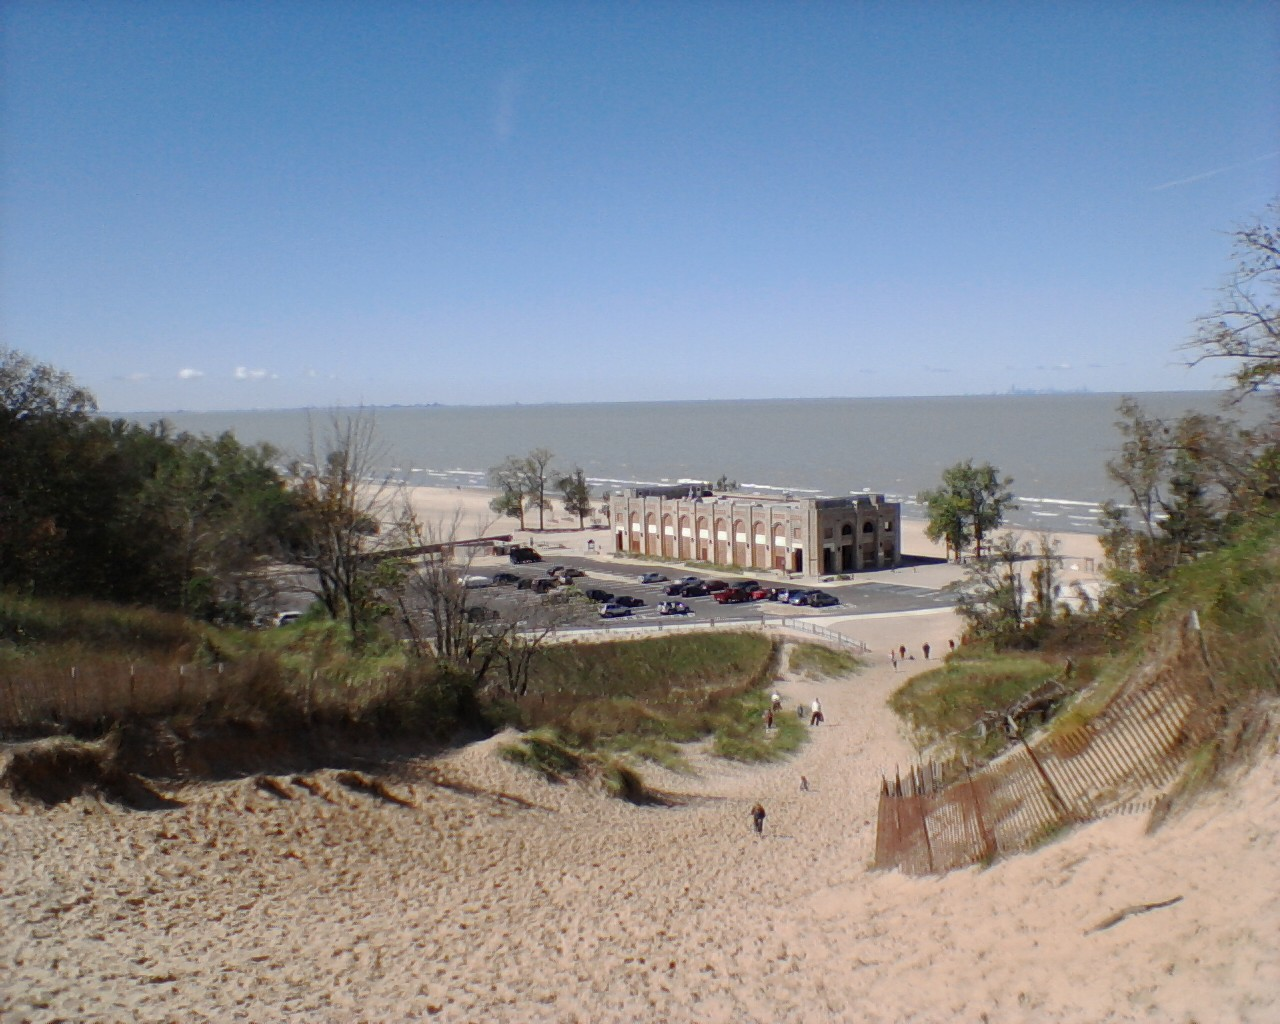 Indiana+dunes+state+park+camping+reservations